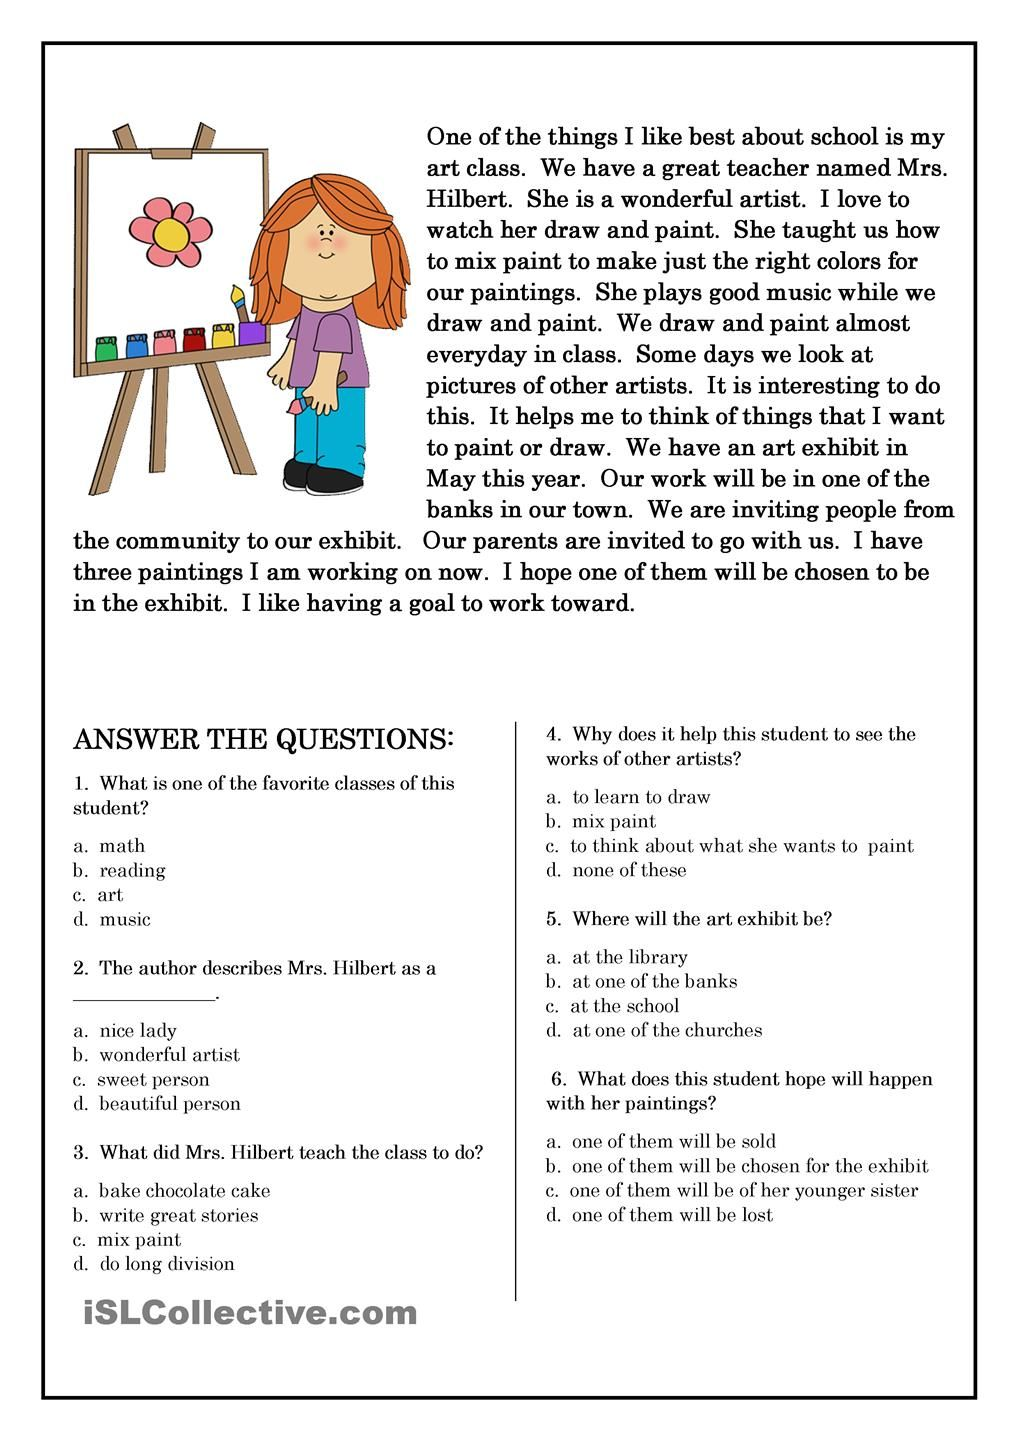 Worksheet Grade 5 Comprehension Worksheets Free 1000 images about reading comprehension on pinterest and worksheets